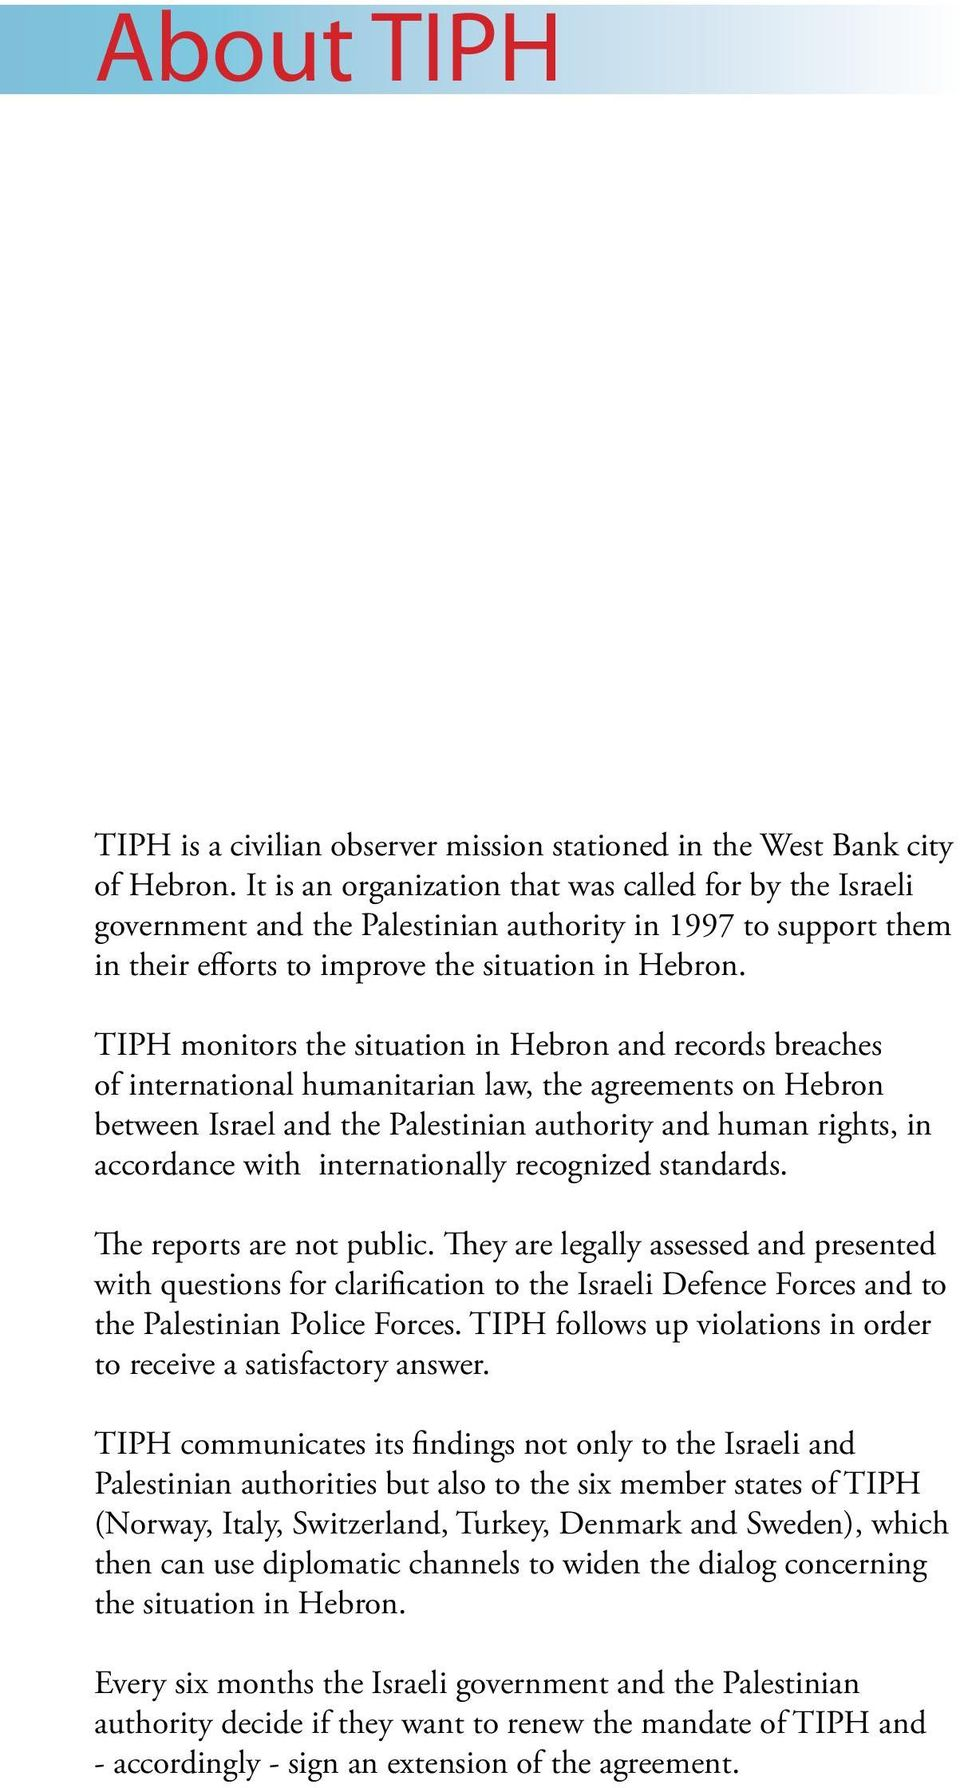 TIPH monitors the situation in Hebron and records breaches of international humanitarian law, the agreements on Hebron between Israel and the Palestinian authority and human rights, in accordance